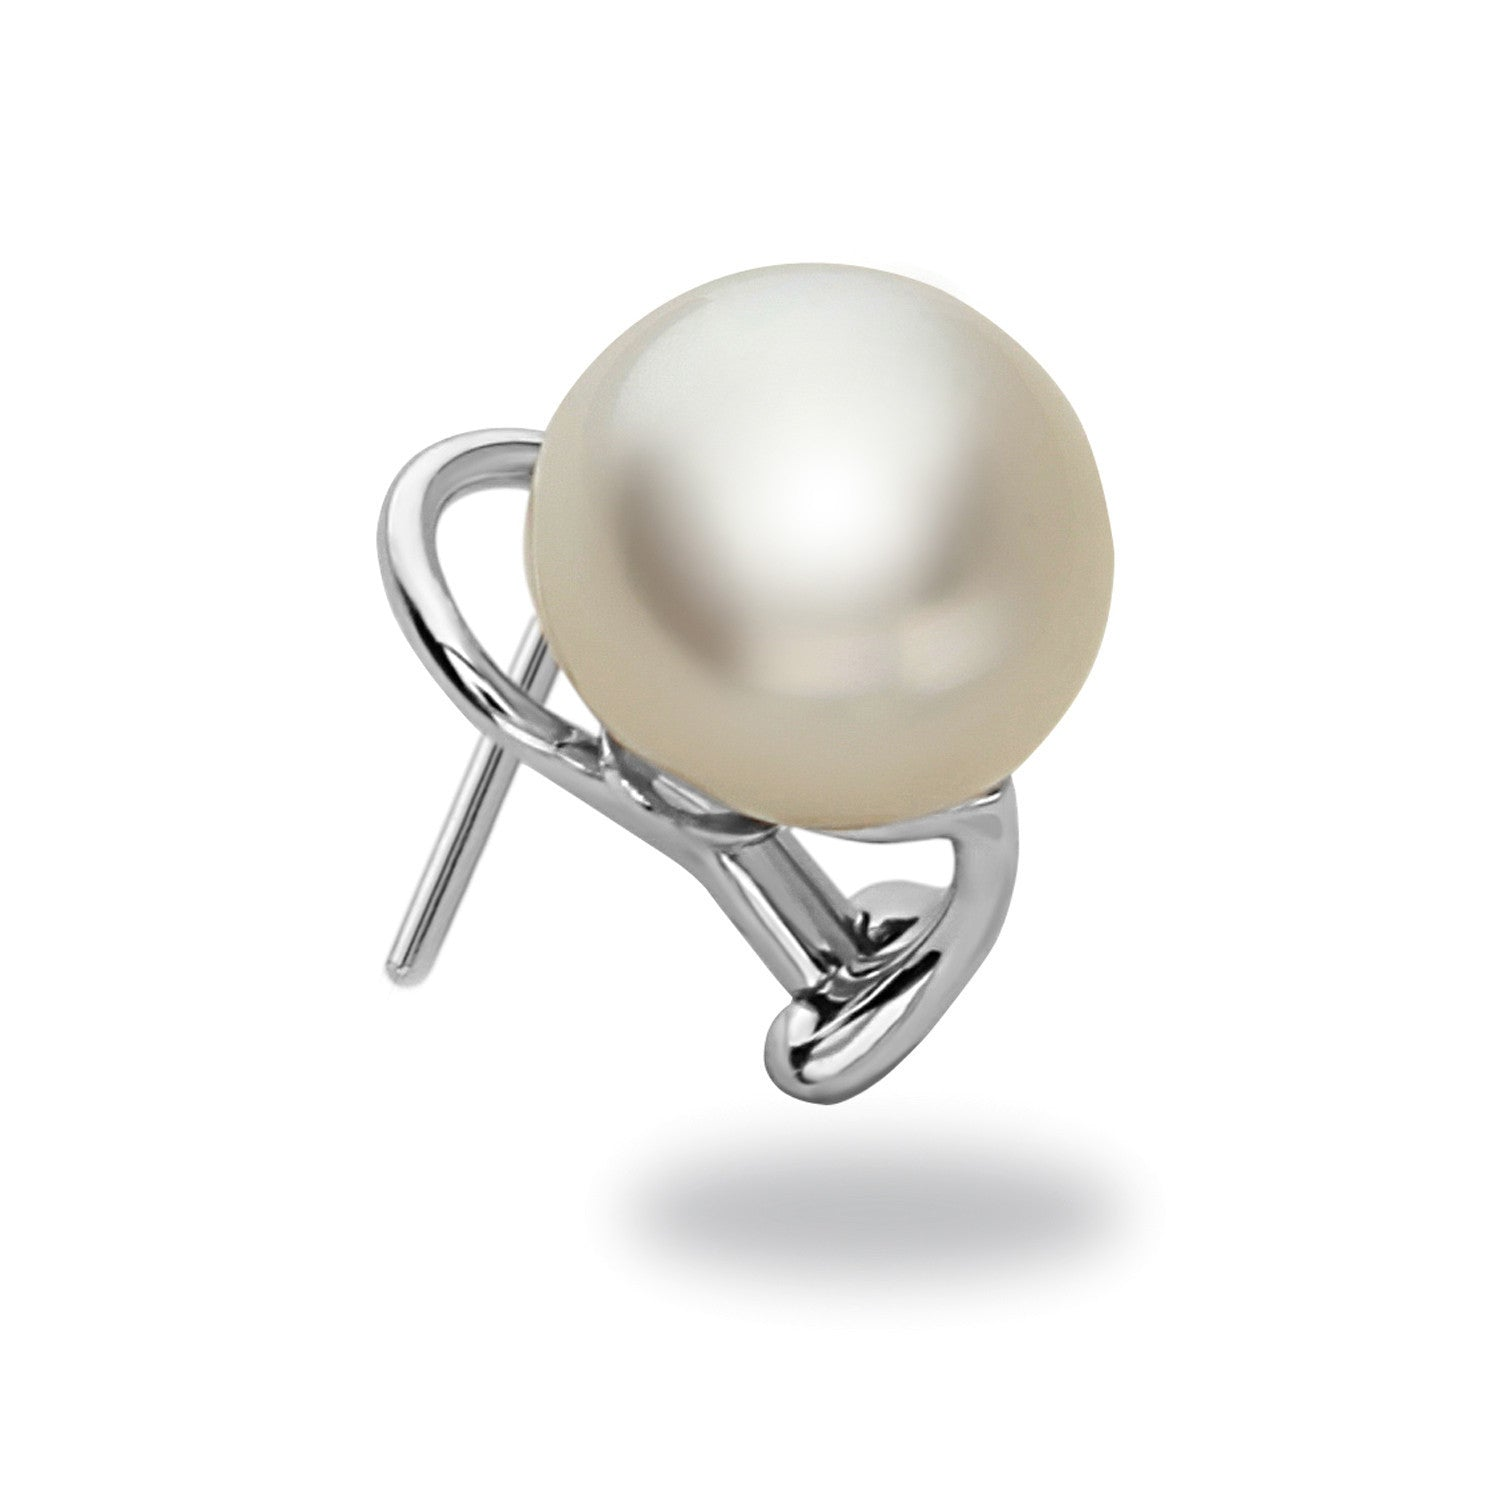 15x16mm White South Sea Pearl Stud Earring